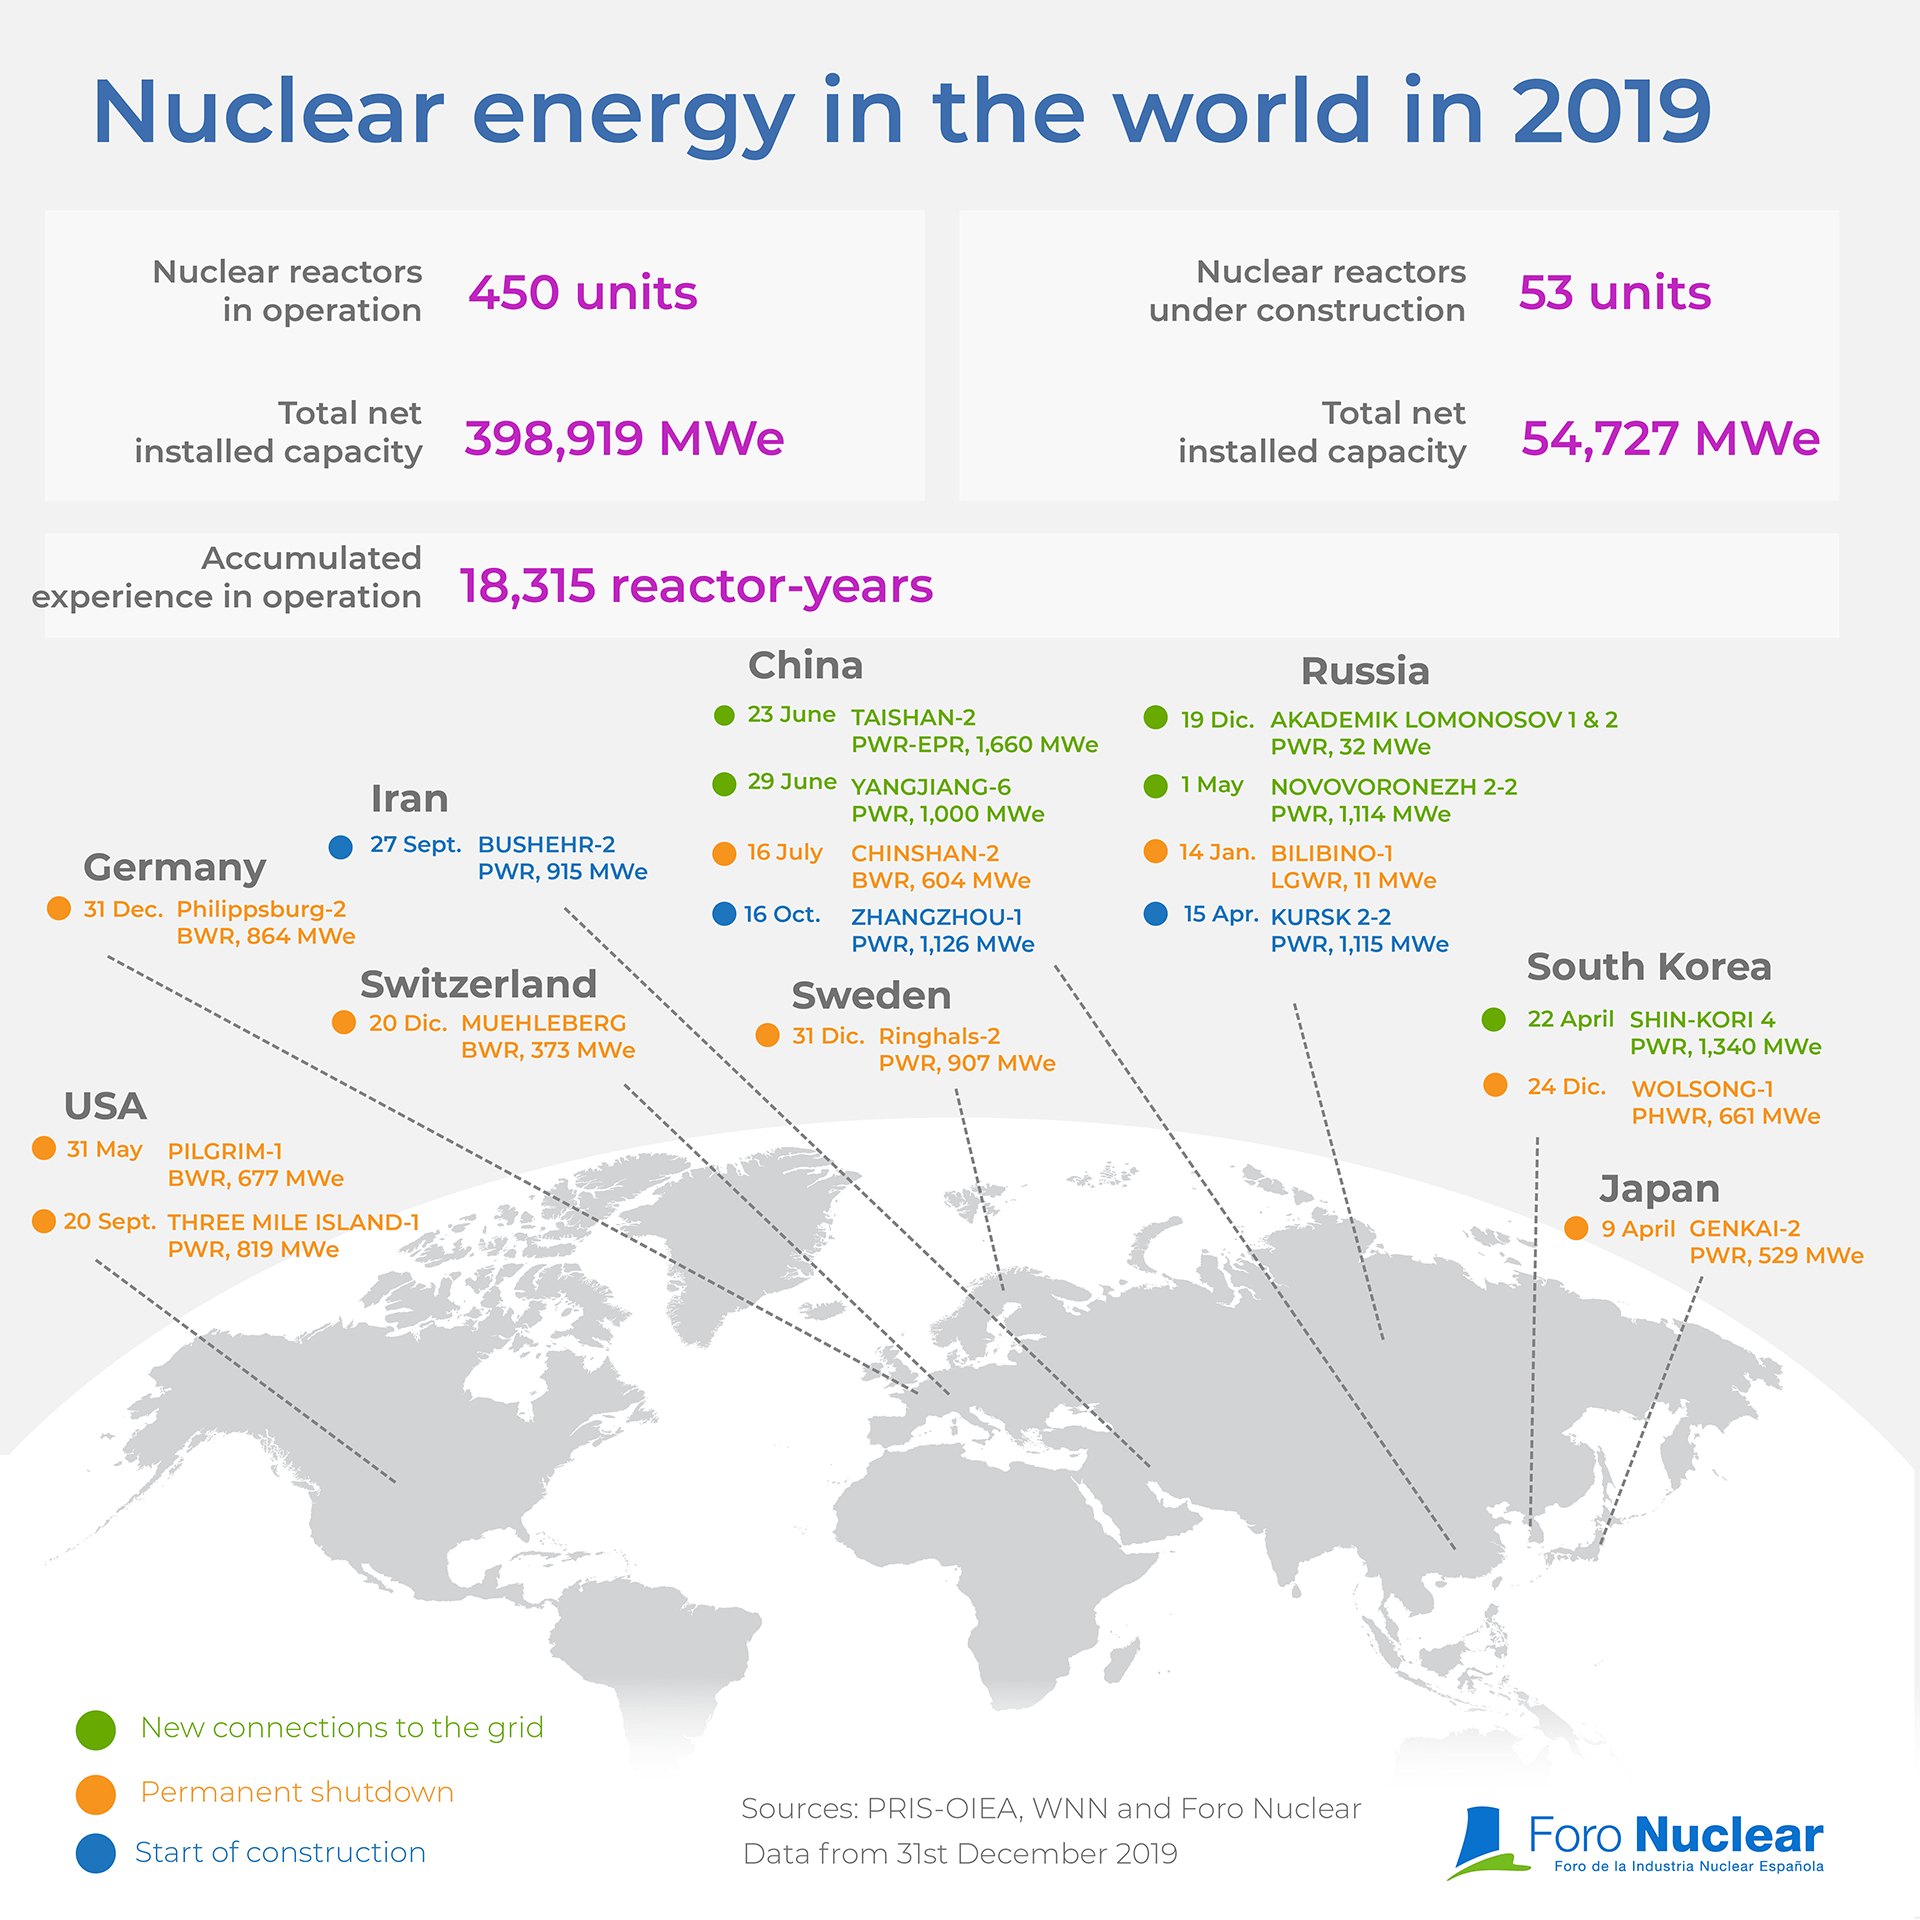 Nuclear energy in the world in 2019